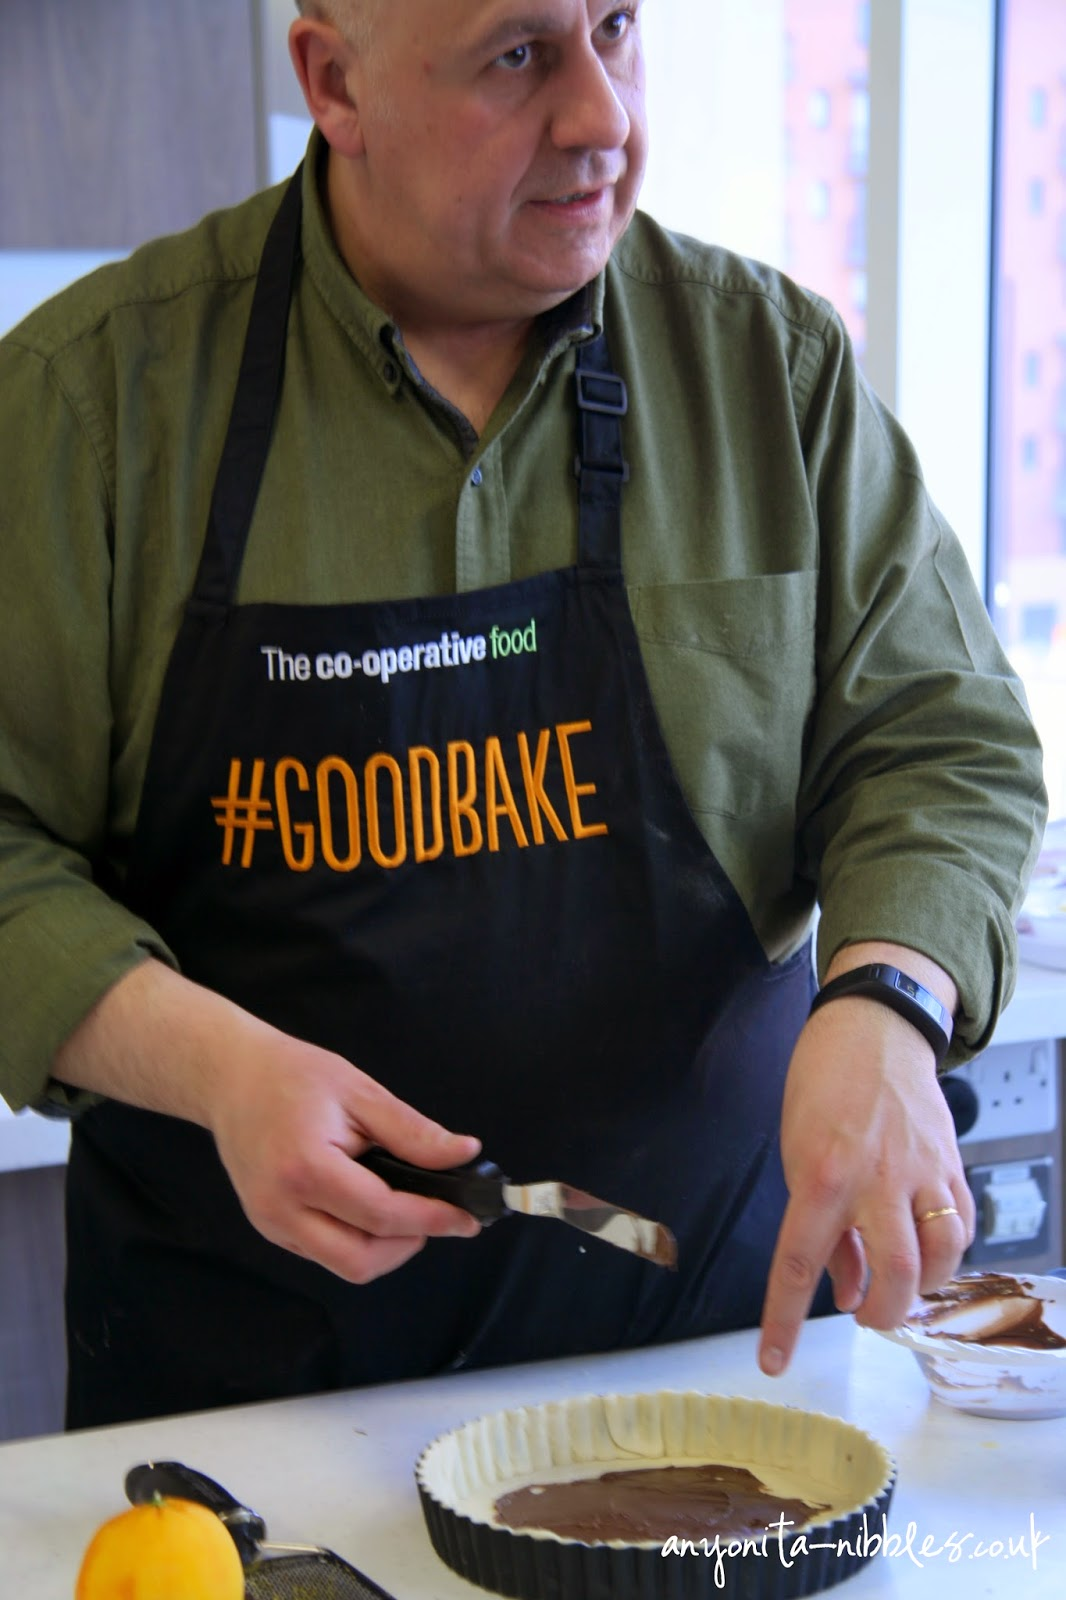 Luis Troyano explaining how to make a chocolate tart at #goodbake | Anyonita-nibbles.co.uk